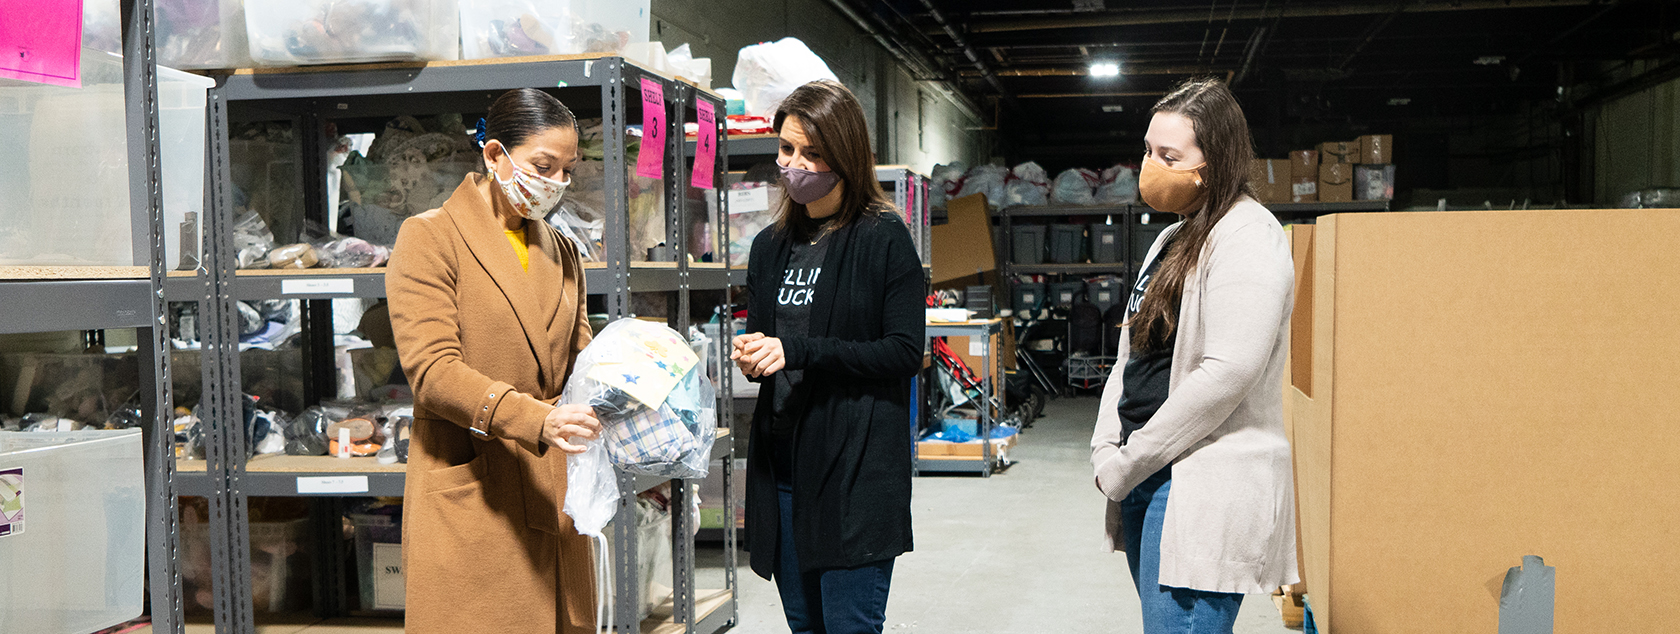 Amina-Osman-Weiskerger-executive-director-of-sharebaby-gives-ellin-&-tucker-employees-tour-of-warehouse